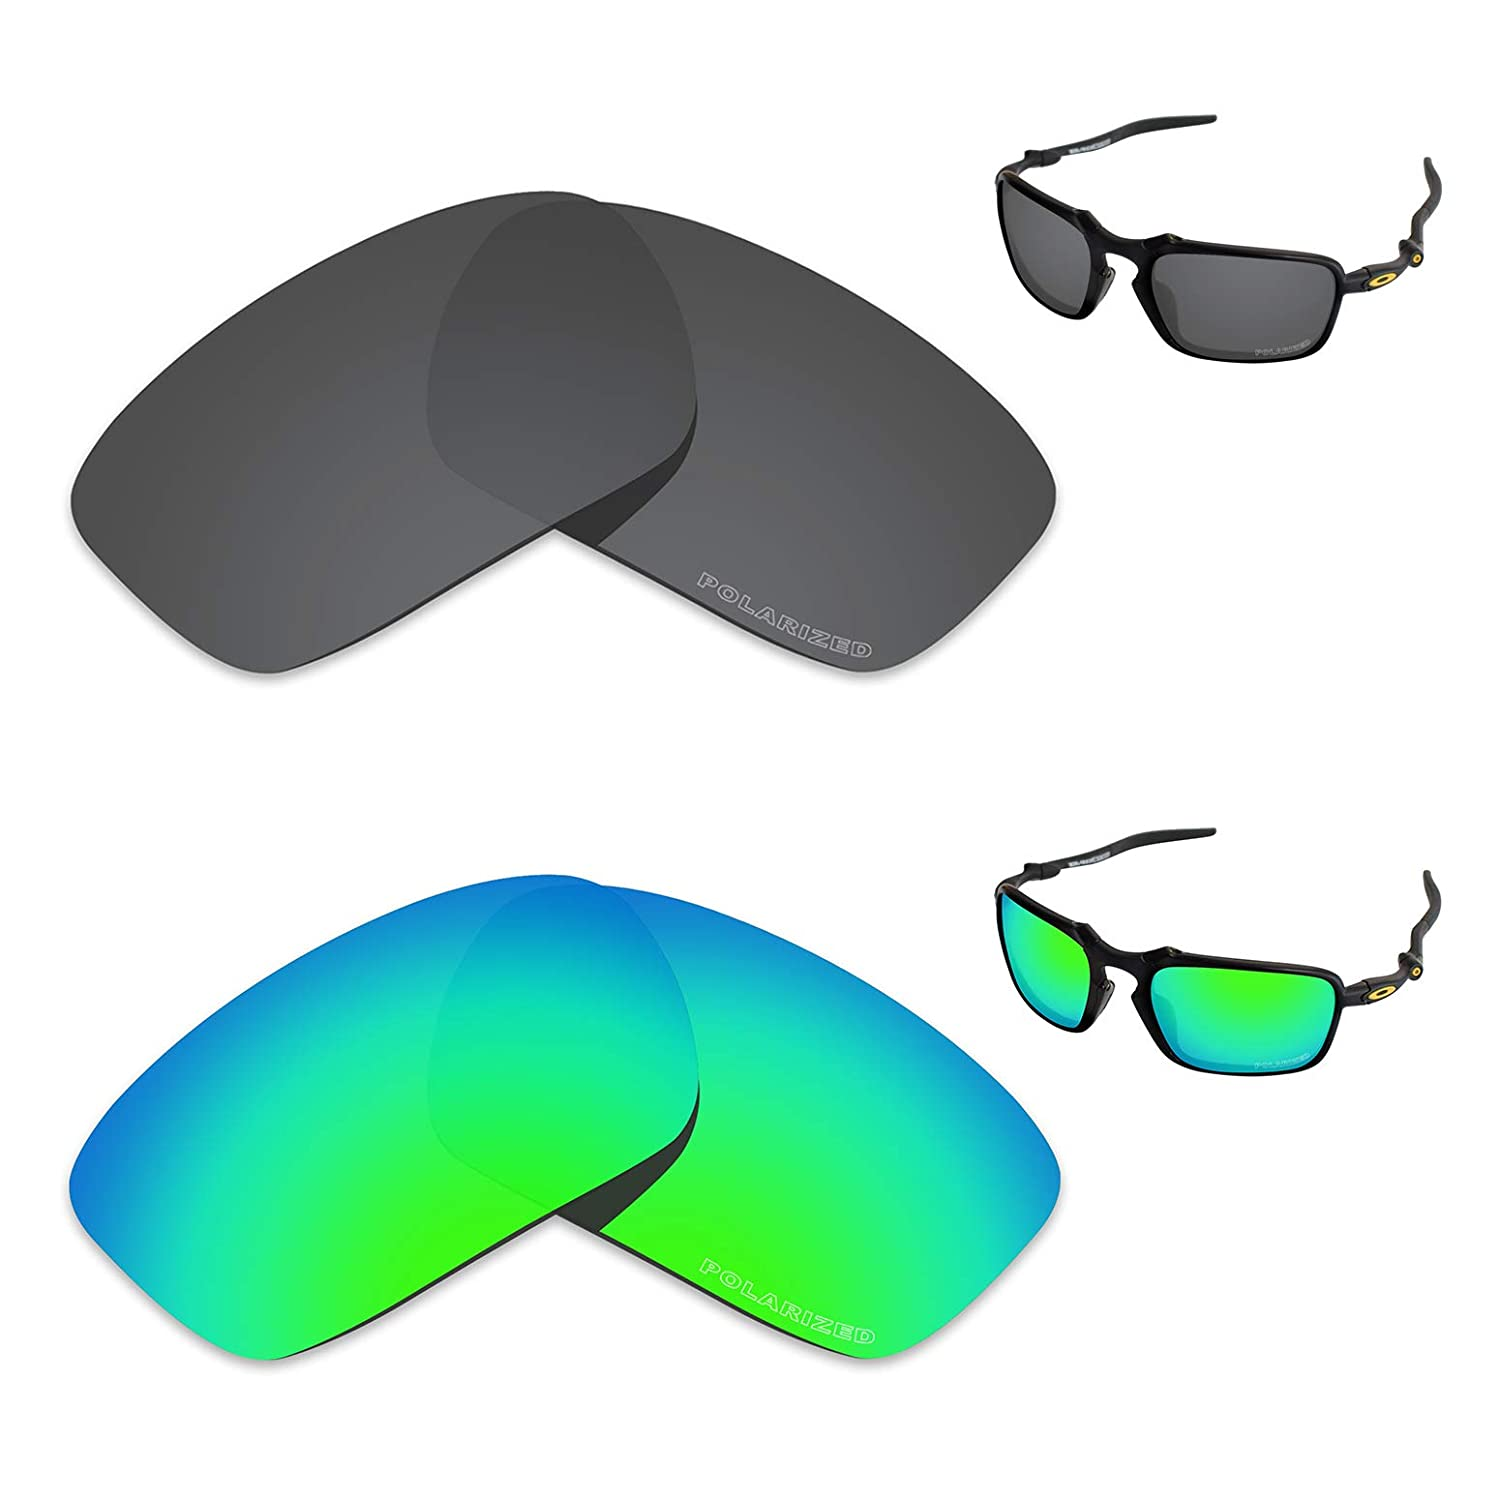 0d796e9367069 Amazon.com  Tintart Performance Replacement Lenses for Oakley Badman  Polarized Etched - Value Pack  Clothing